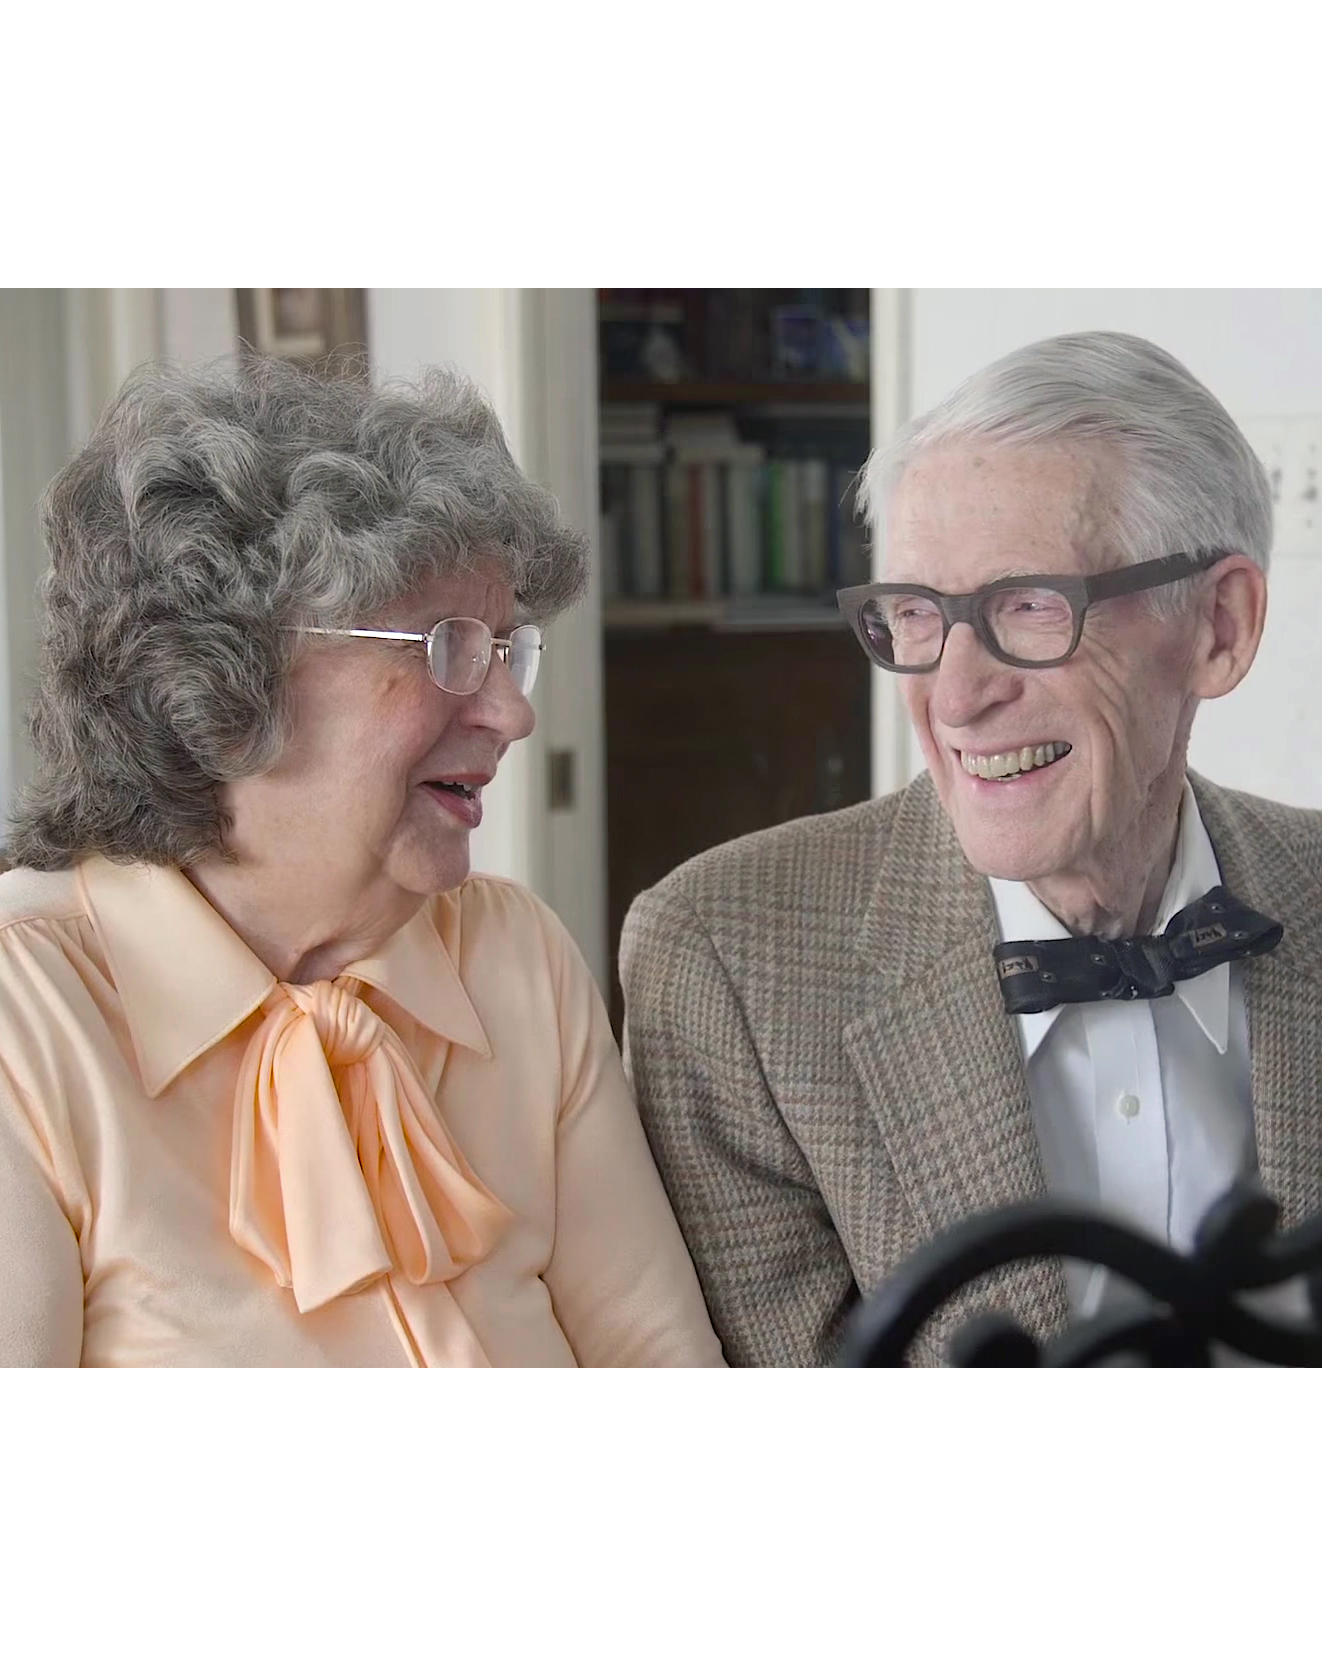 couple-from-up-60th-anniversary-duet-smiling-1015.jpg